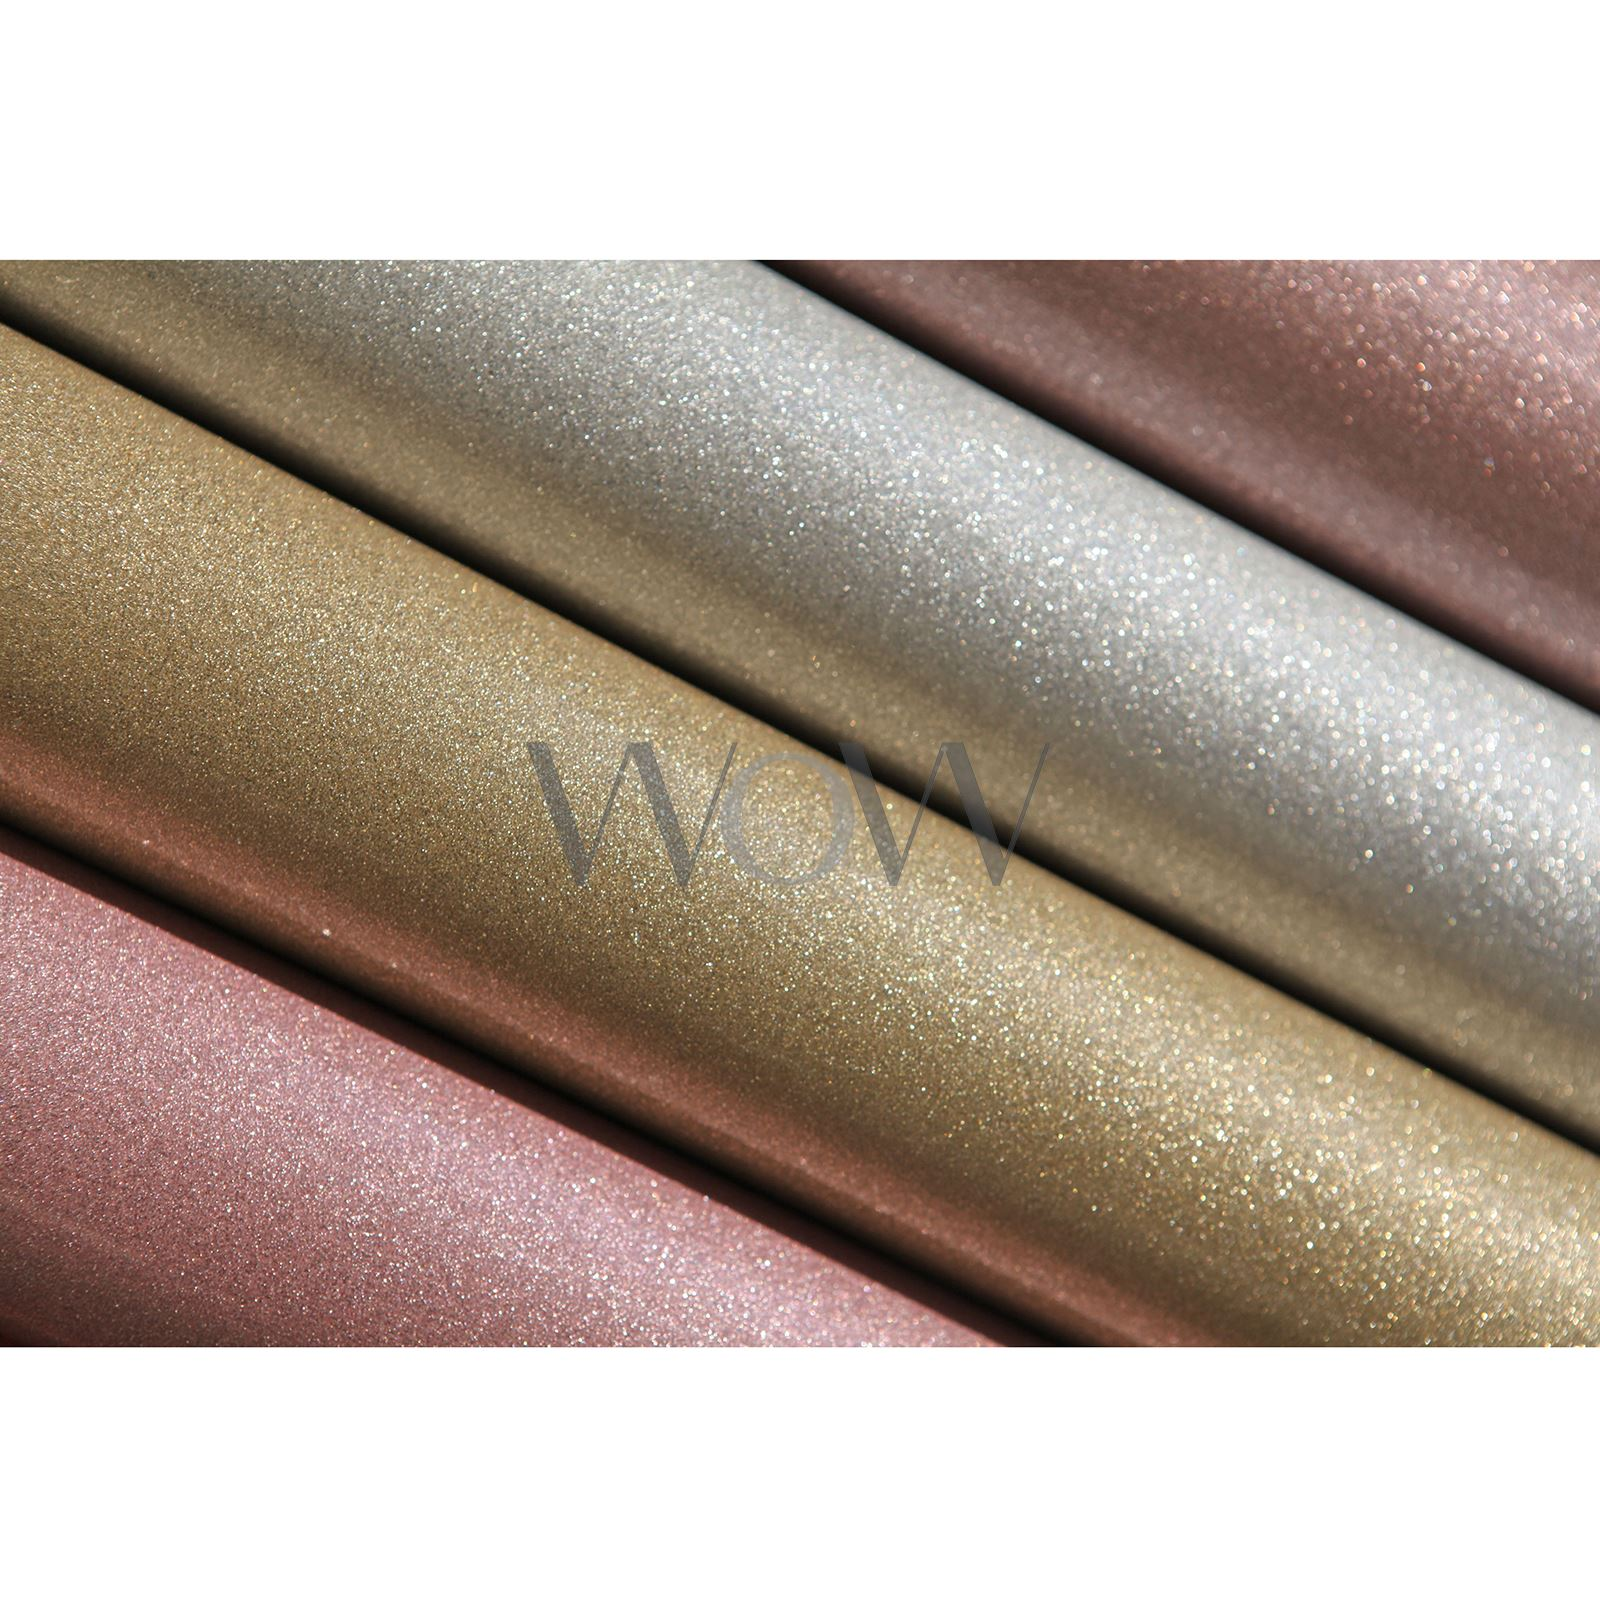 Glitter Sparkle Wallpaper Wall Decor Various Designs And